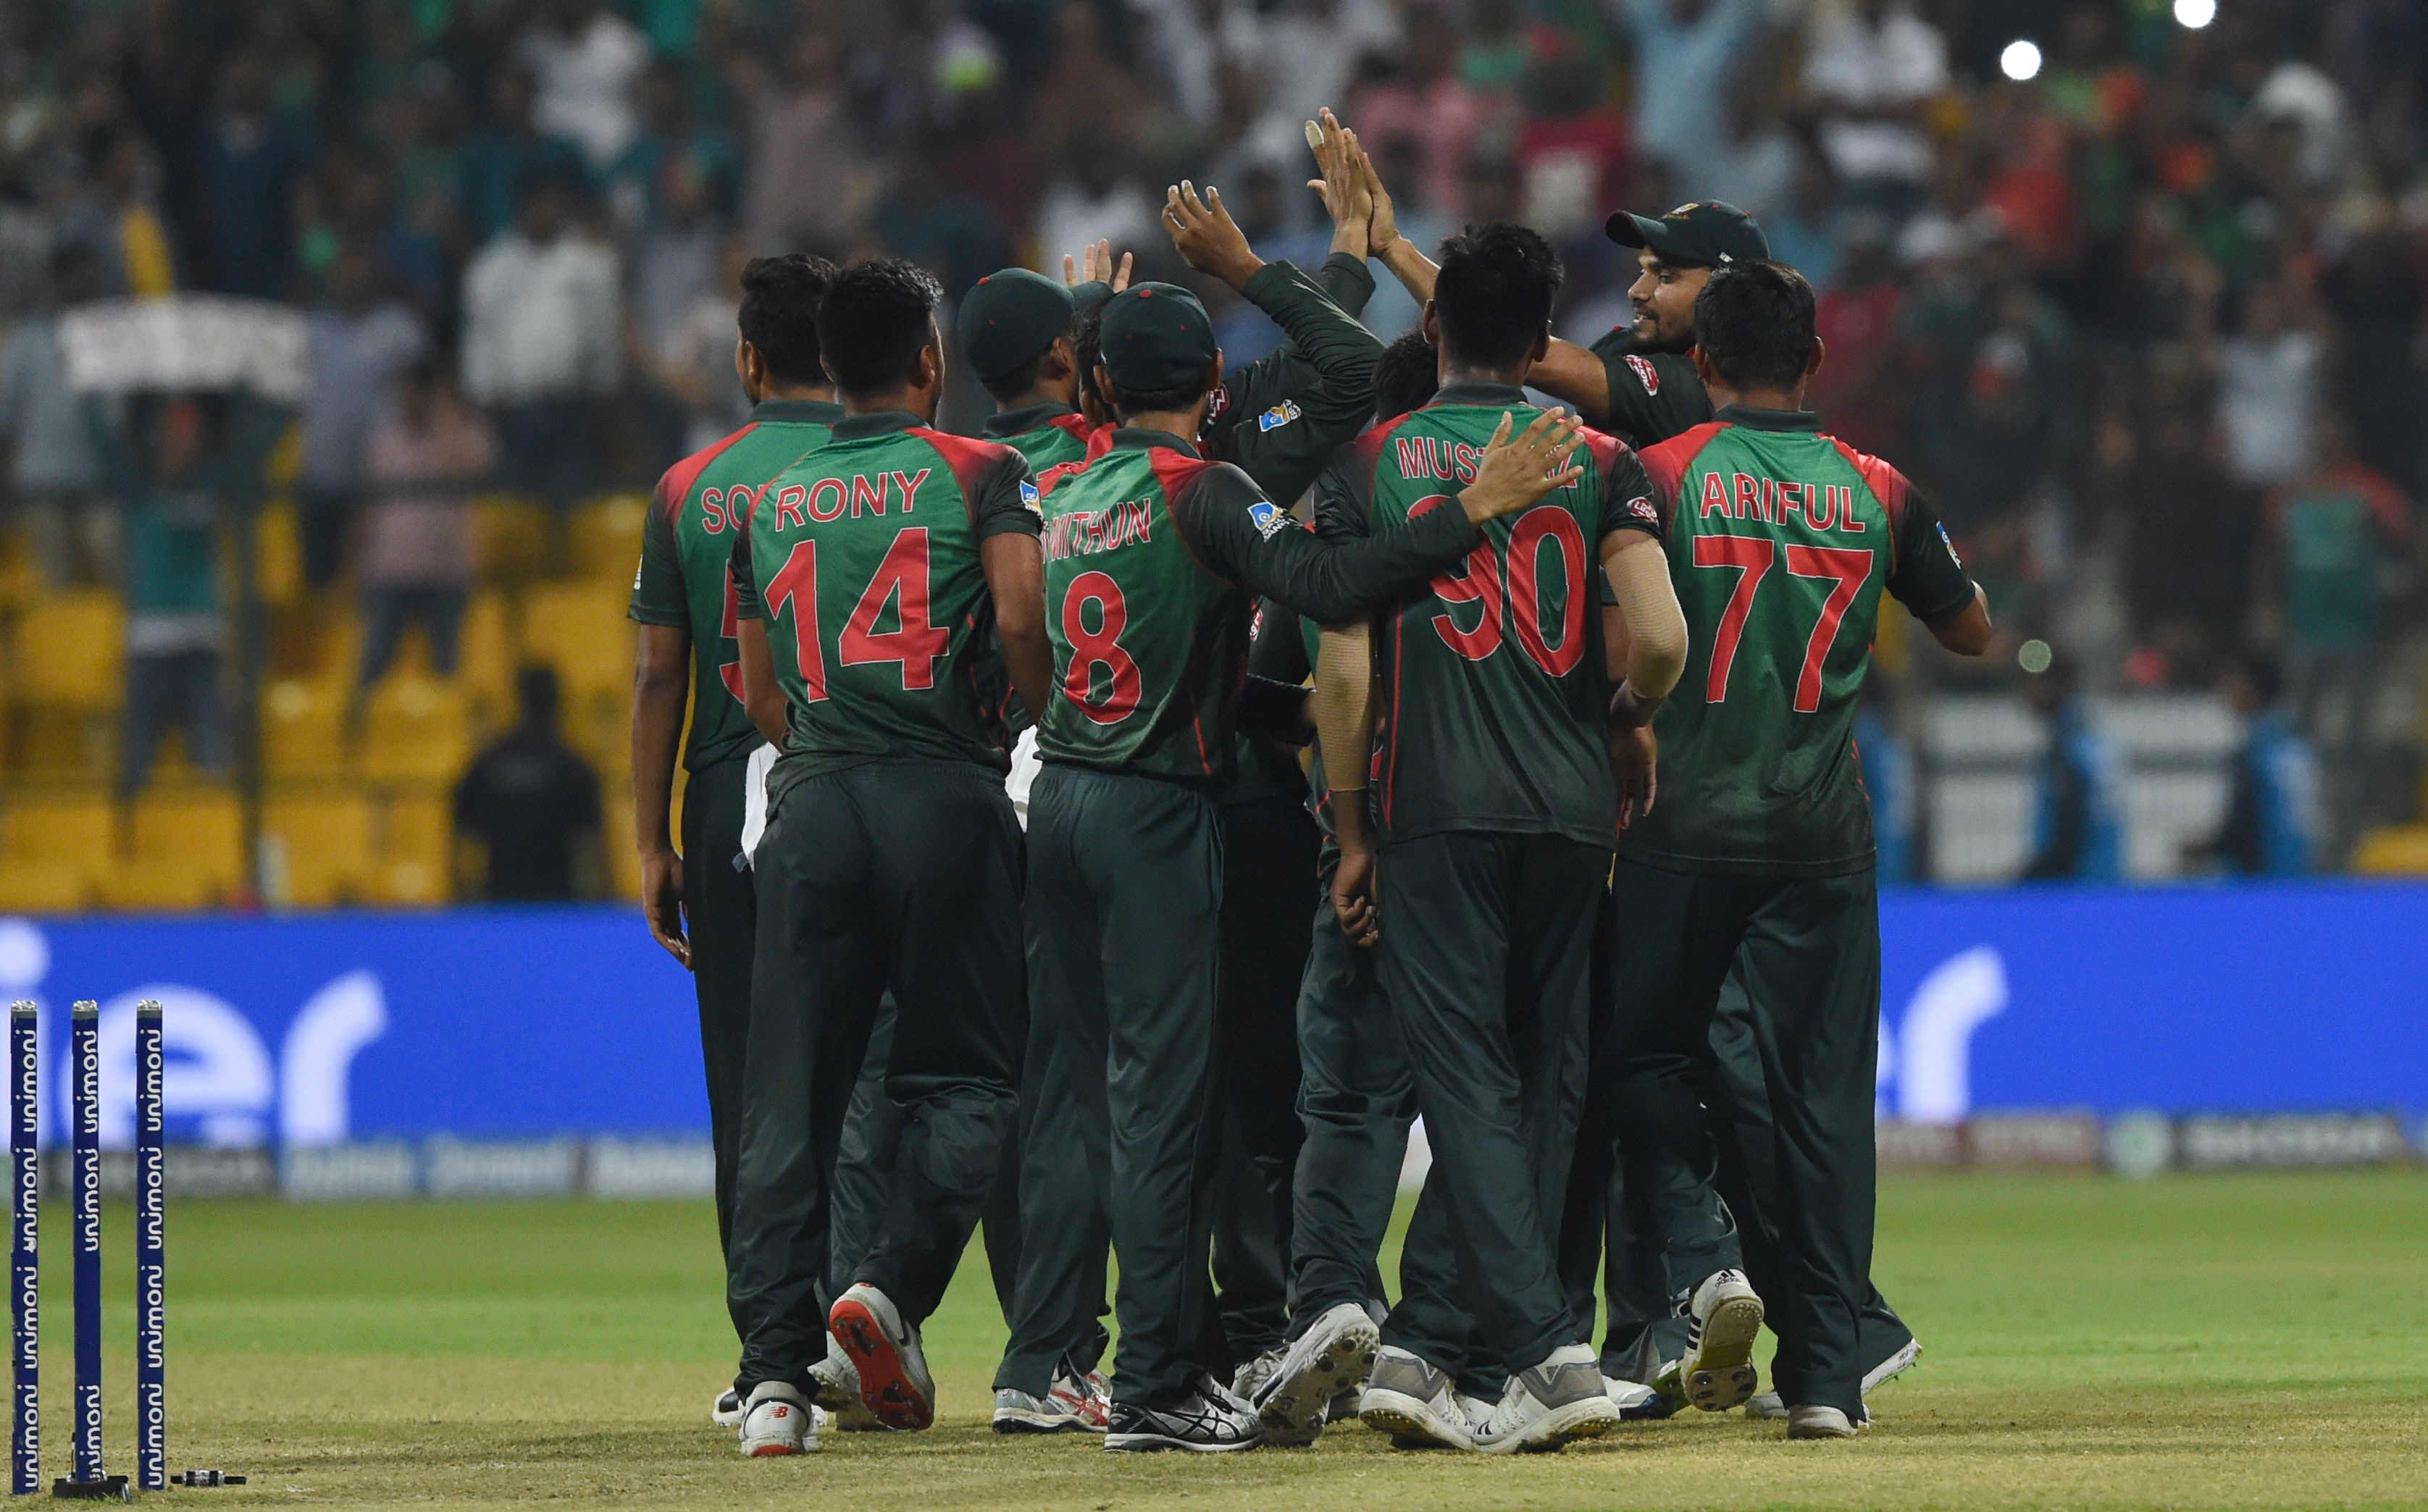 Bangladesh cricketer team celebrates after Bangladesh won by 37 runs during the one day international (ODI) Asia Cup cricket match between Bangladesh and Pakistan at the Sheikh Zayed Stadium in Abu Dhabi